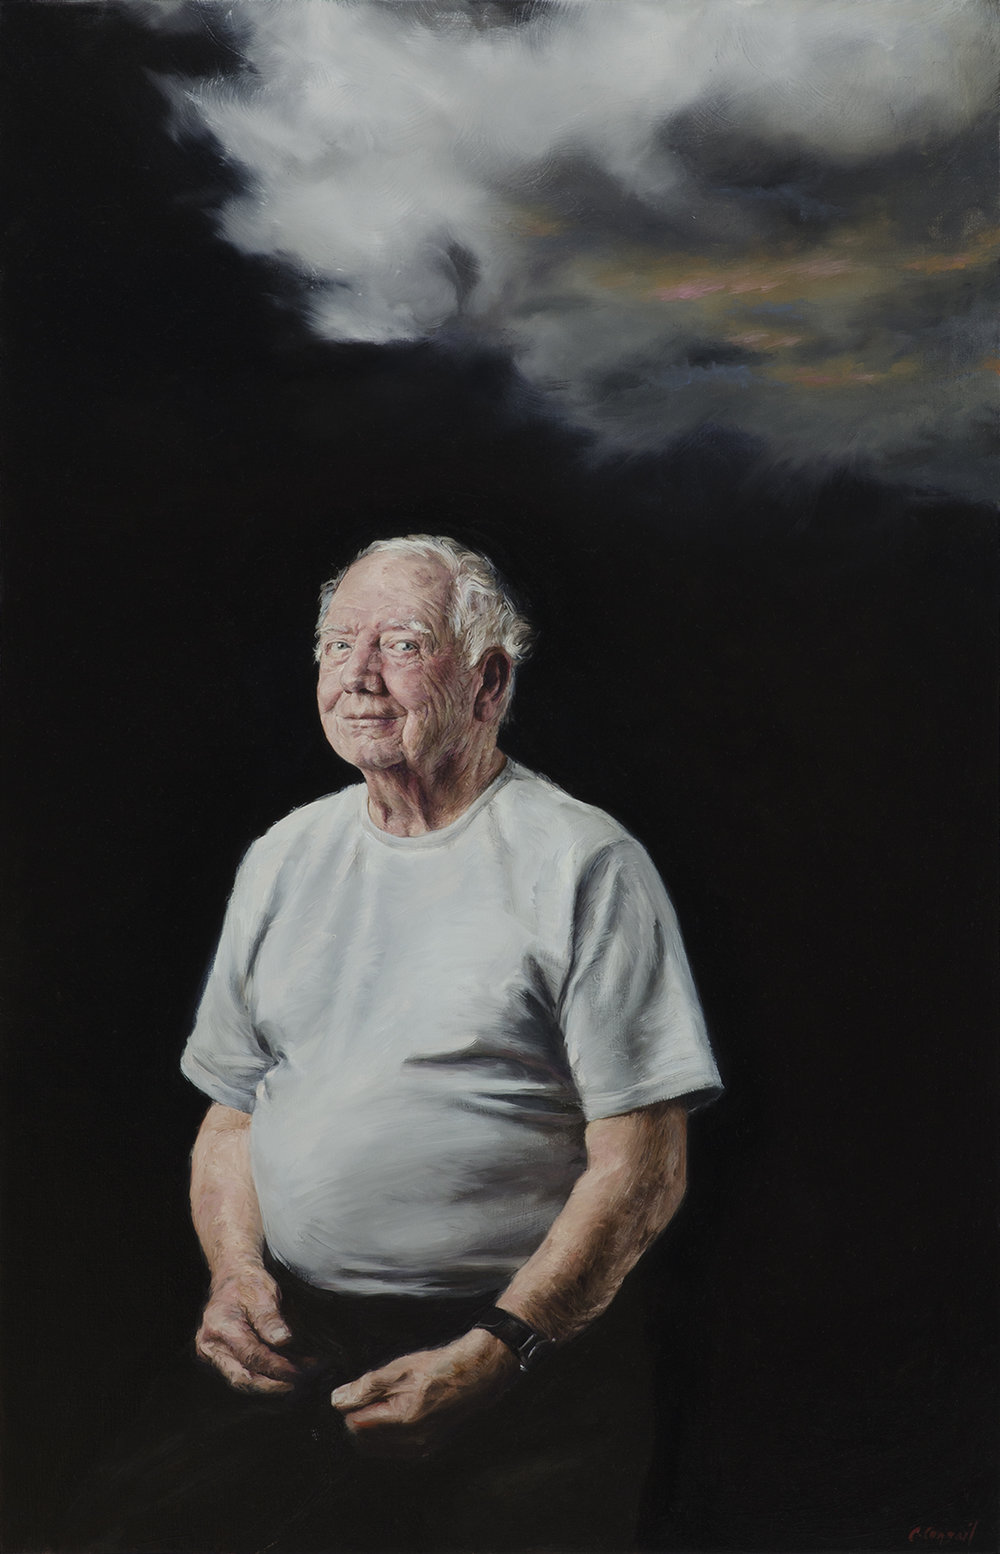 Waiting for Lightning_Congail_Oil on linen_22x34.jpg